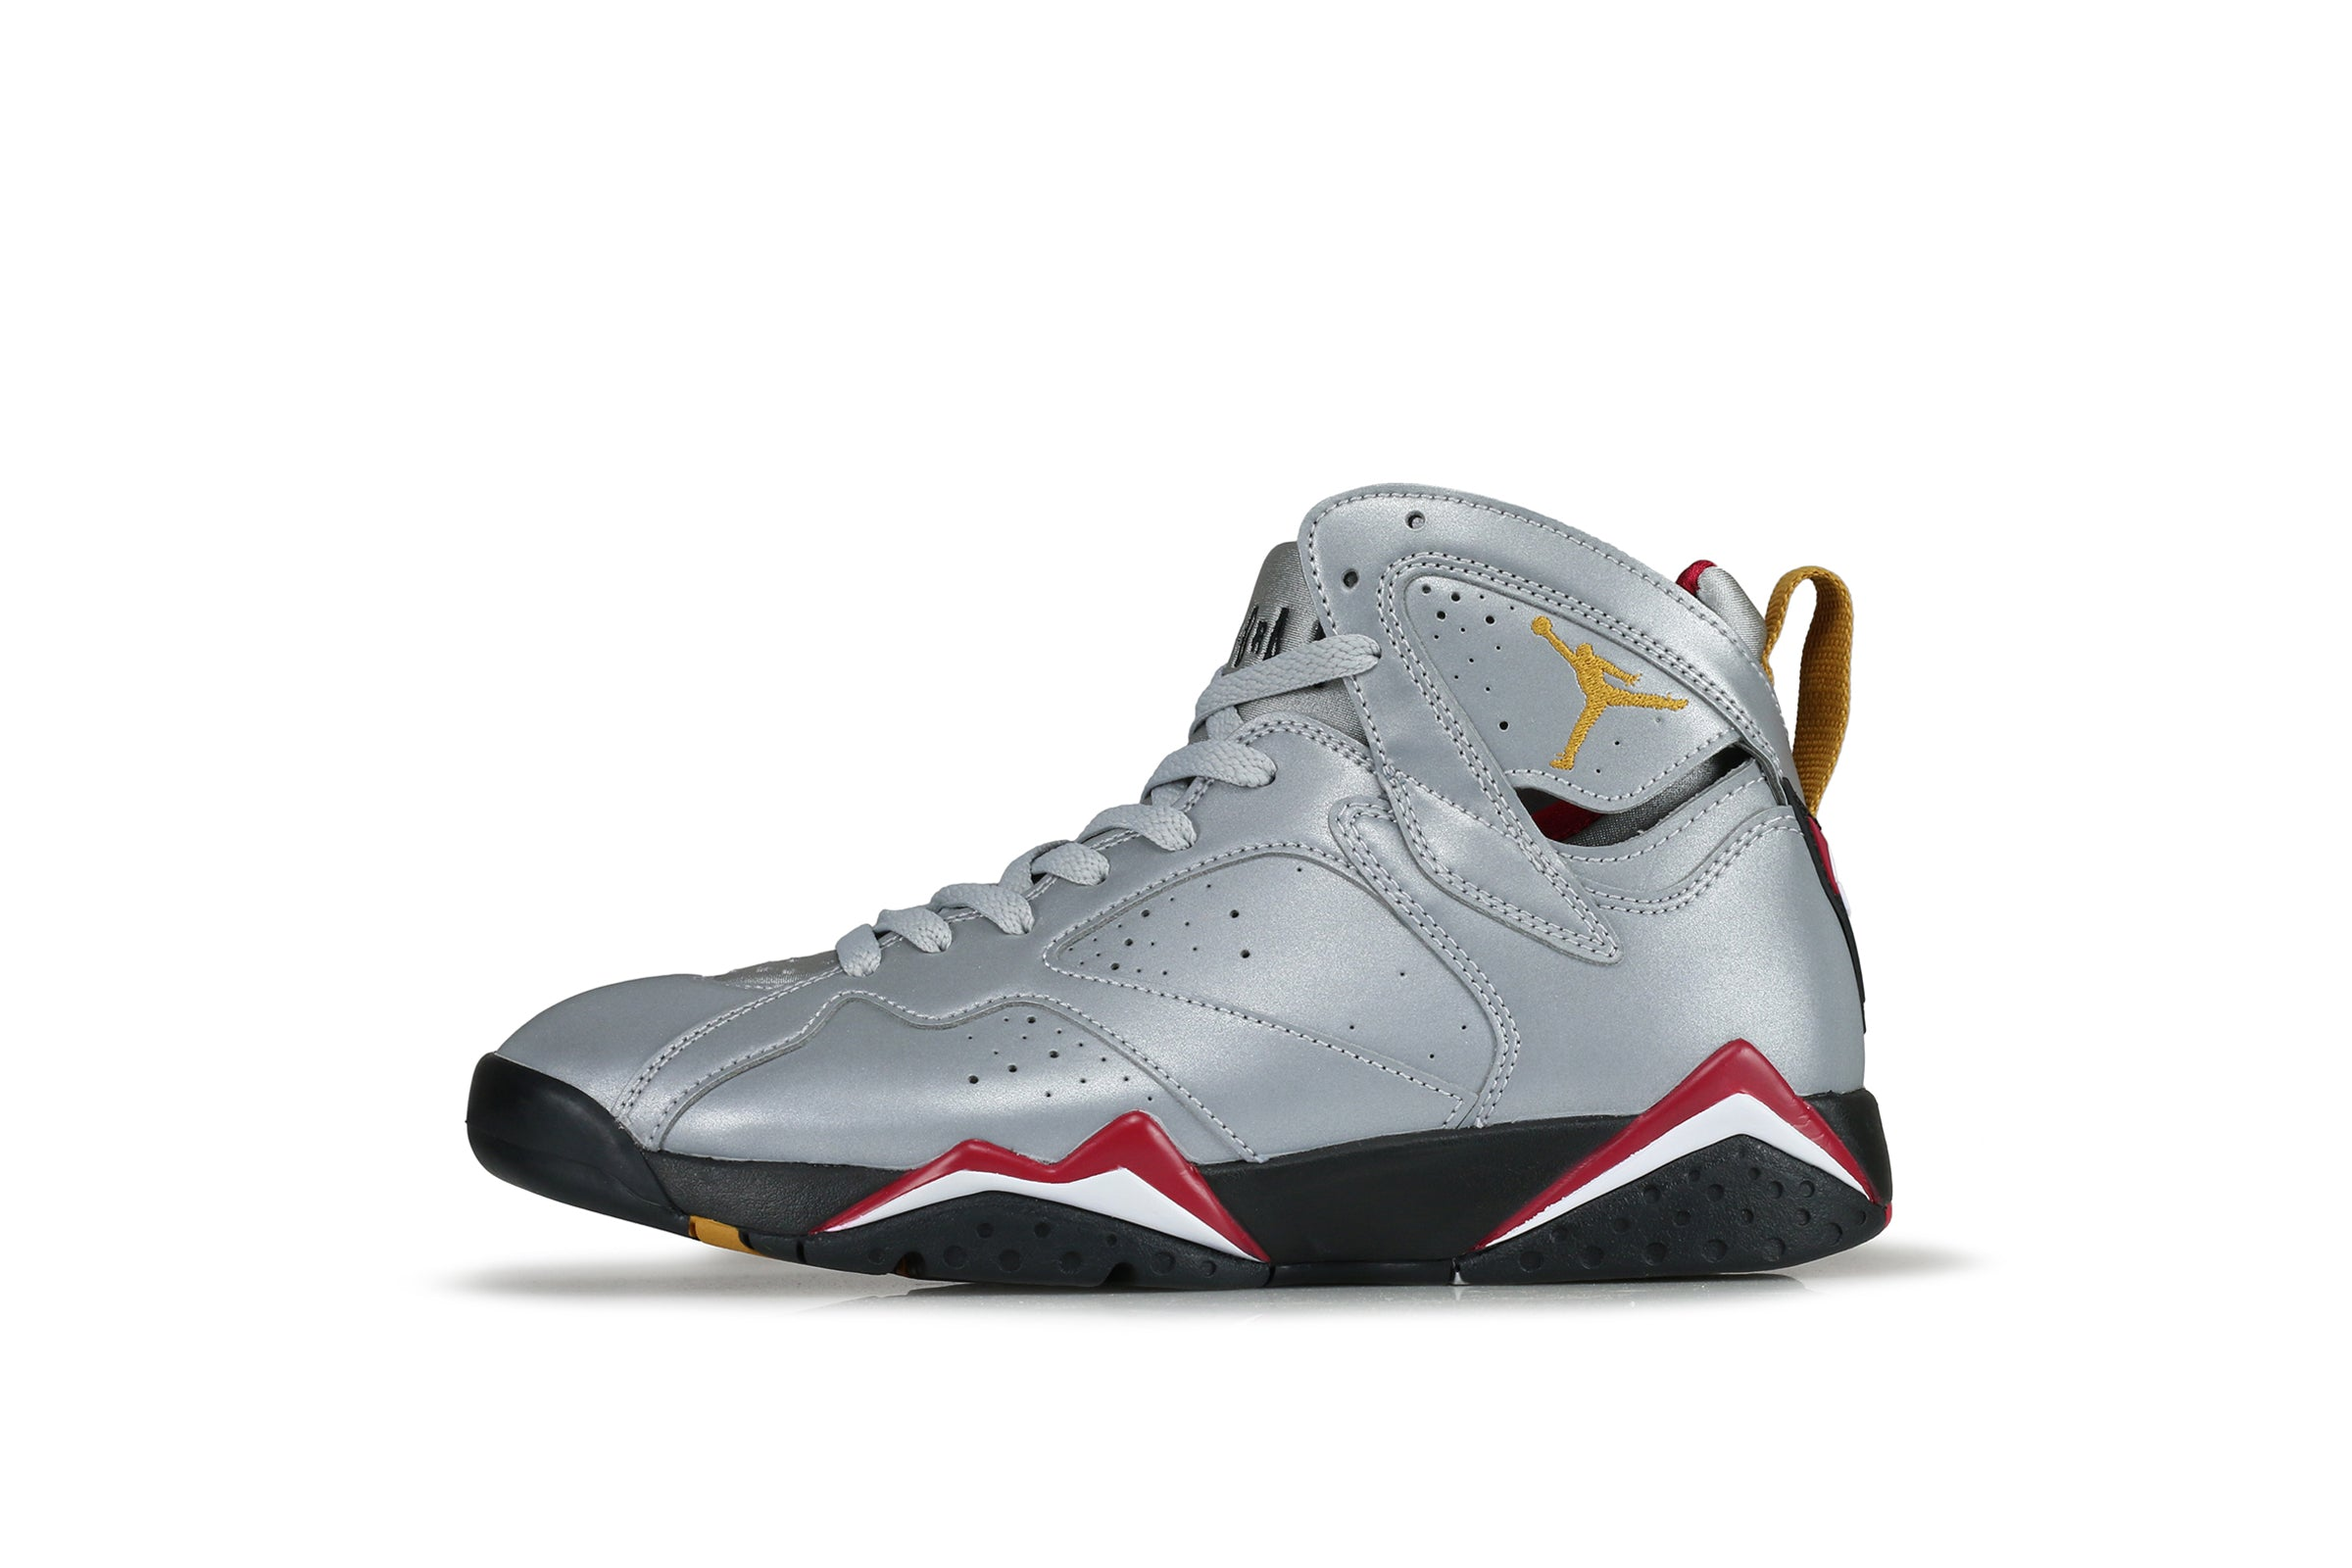 Nike Air Jordan 7 Retro SP 3M NRG